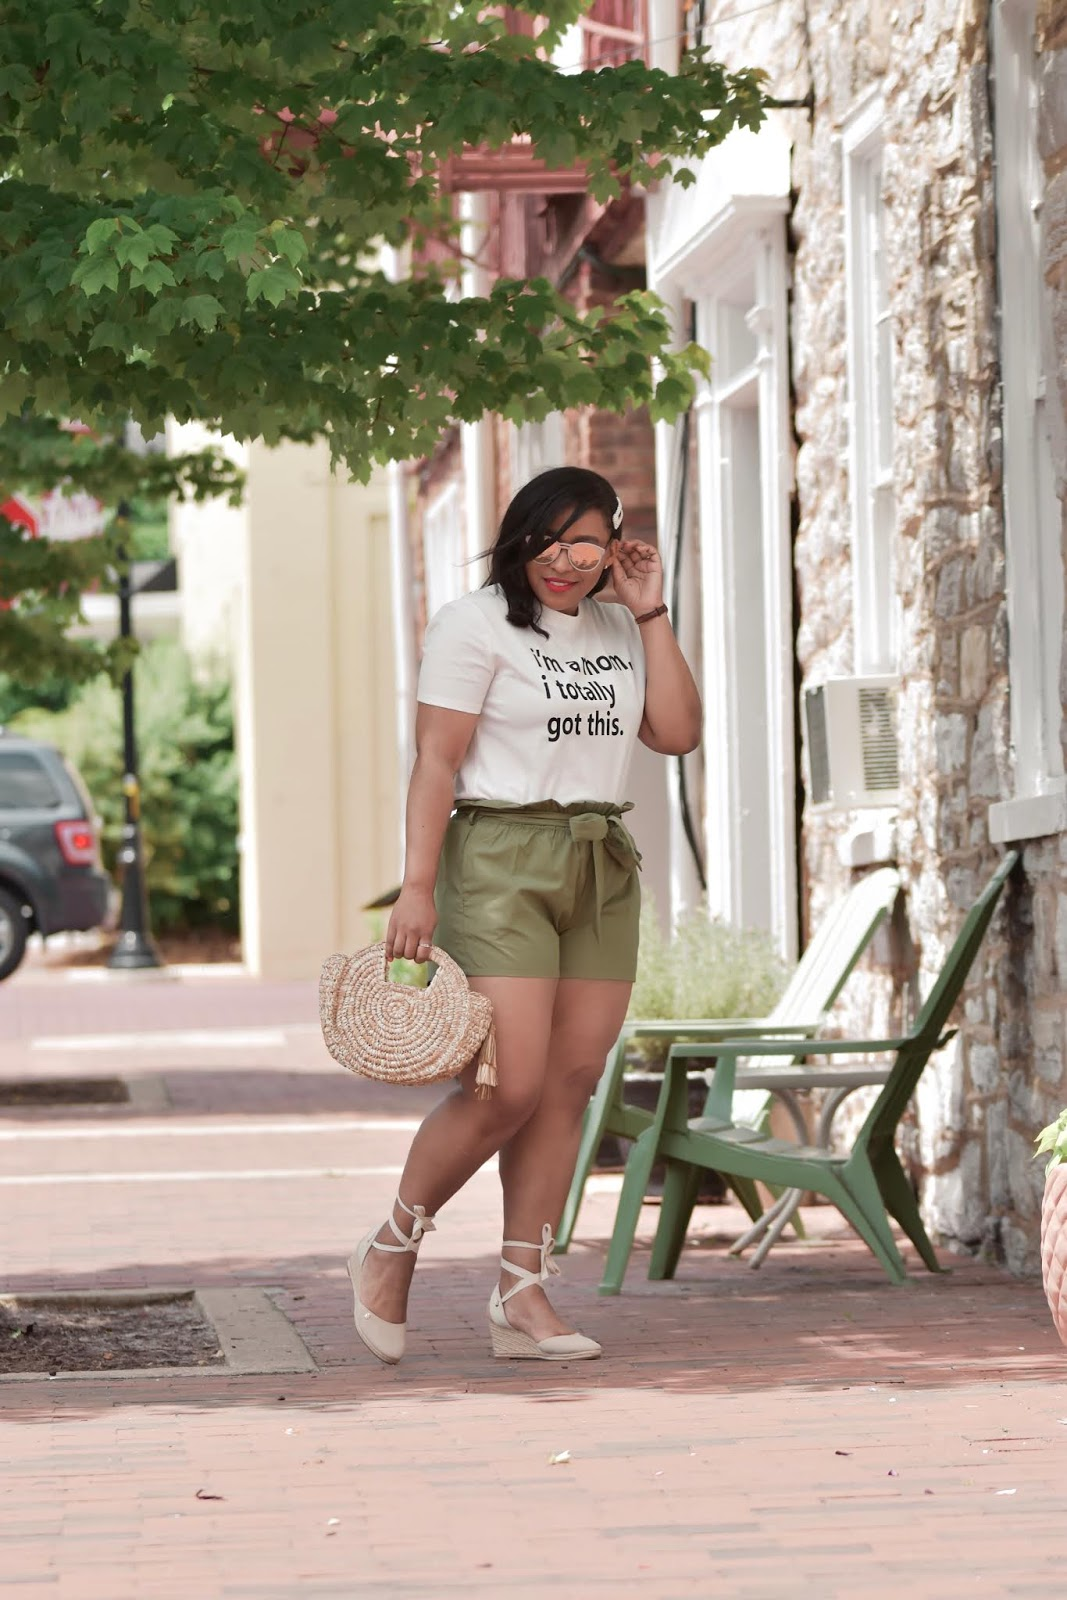 mom blogger, motherhhod, shein, shein outfits, graphic tee, fashionable mom, easy mom looks, summer outfit ideas, paperbag shorts.